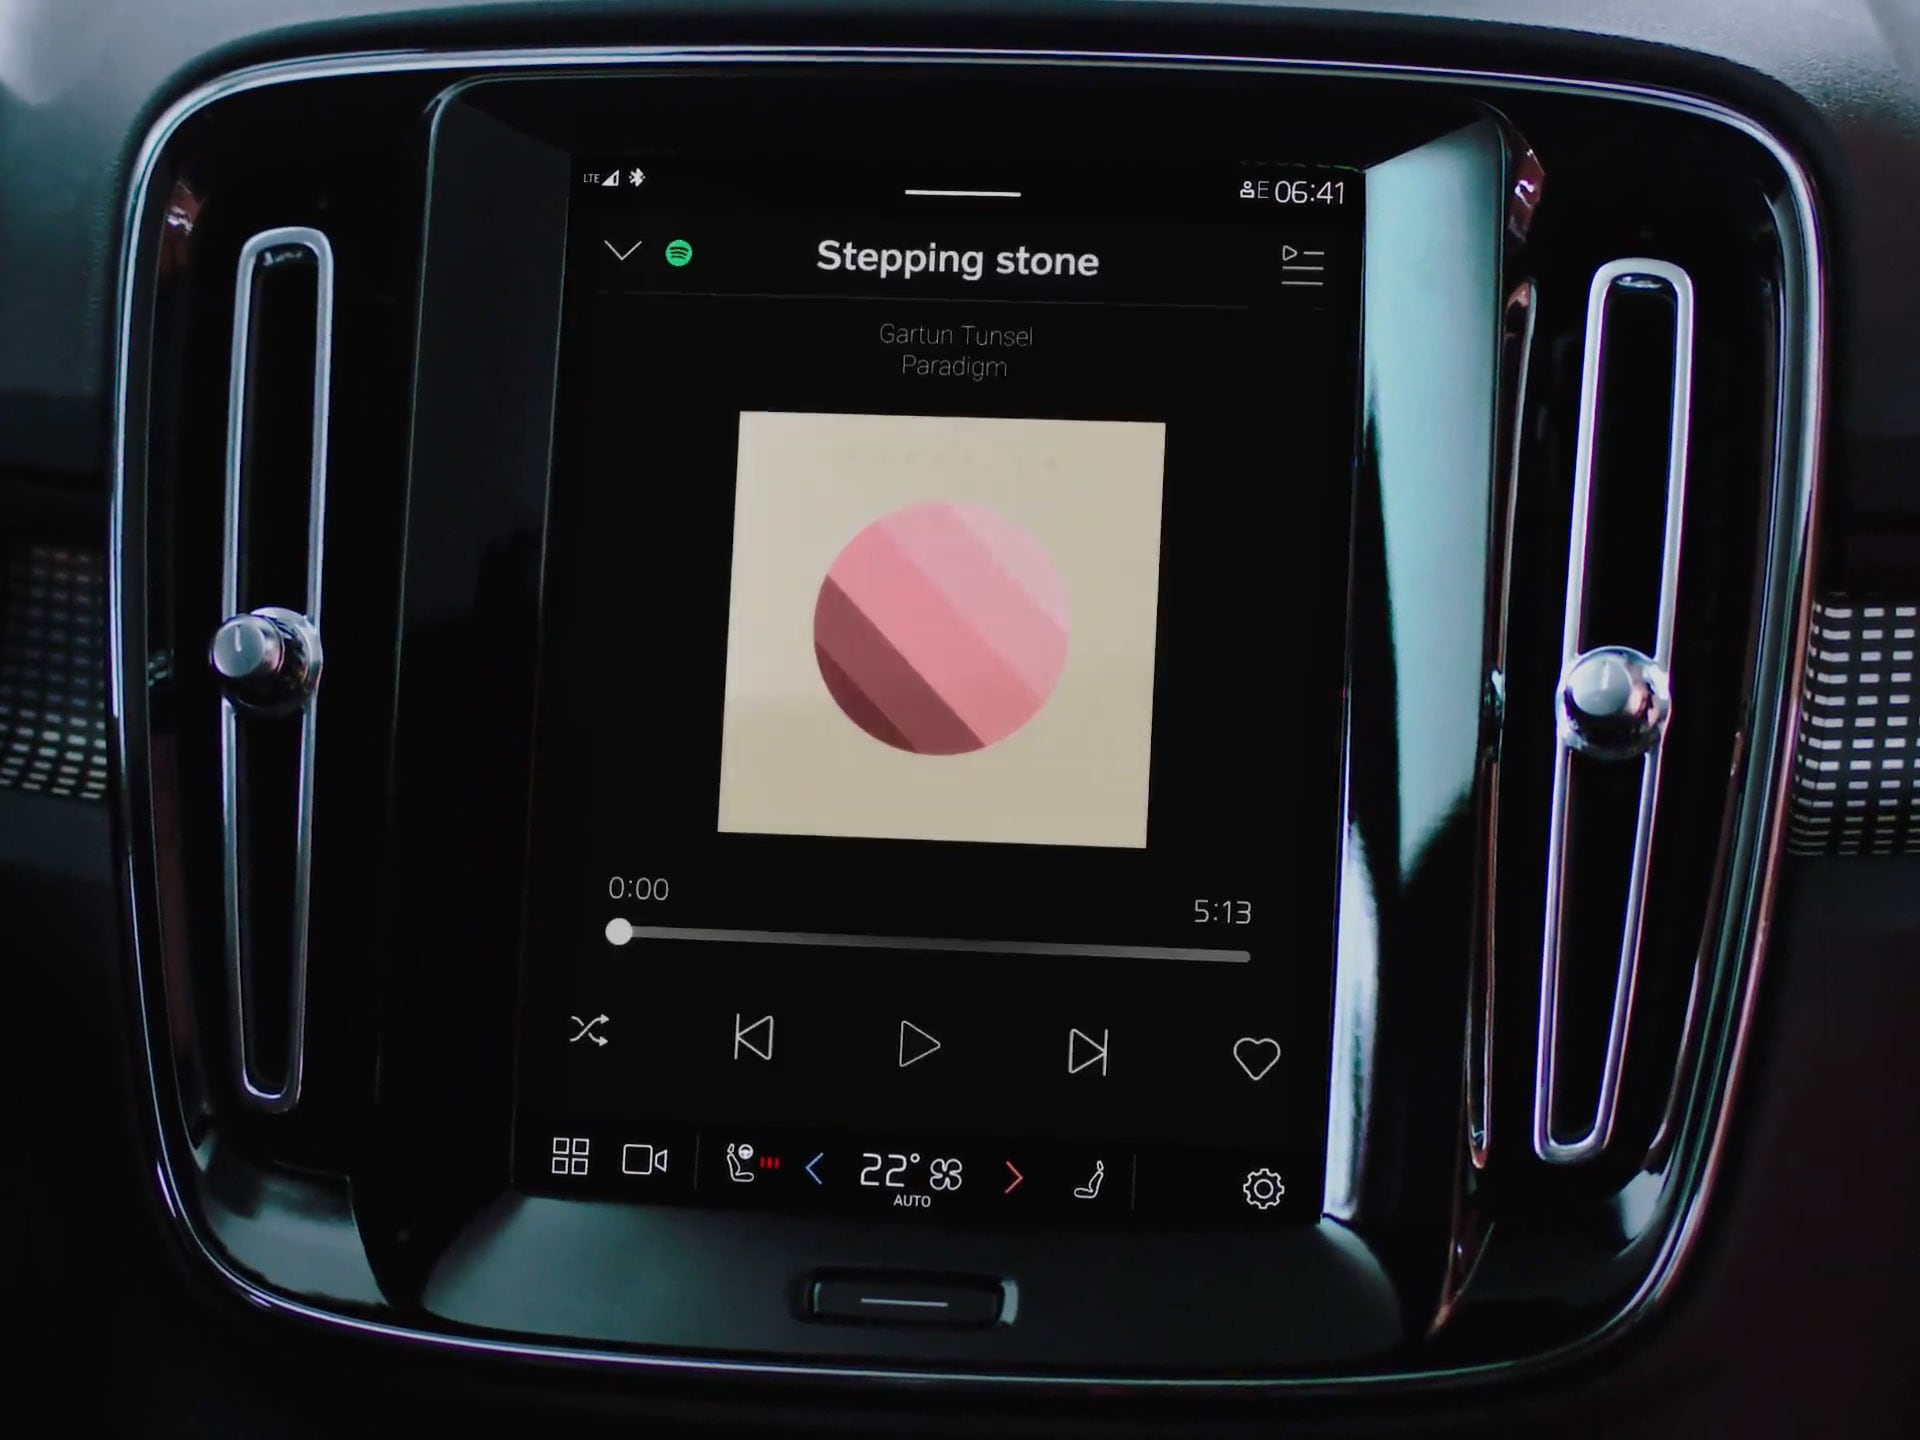 Hands-free voice control enabled by Google Assistant in XC40 Recharge.